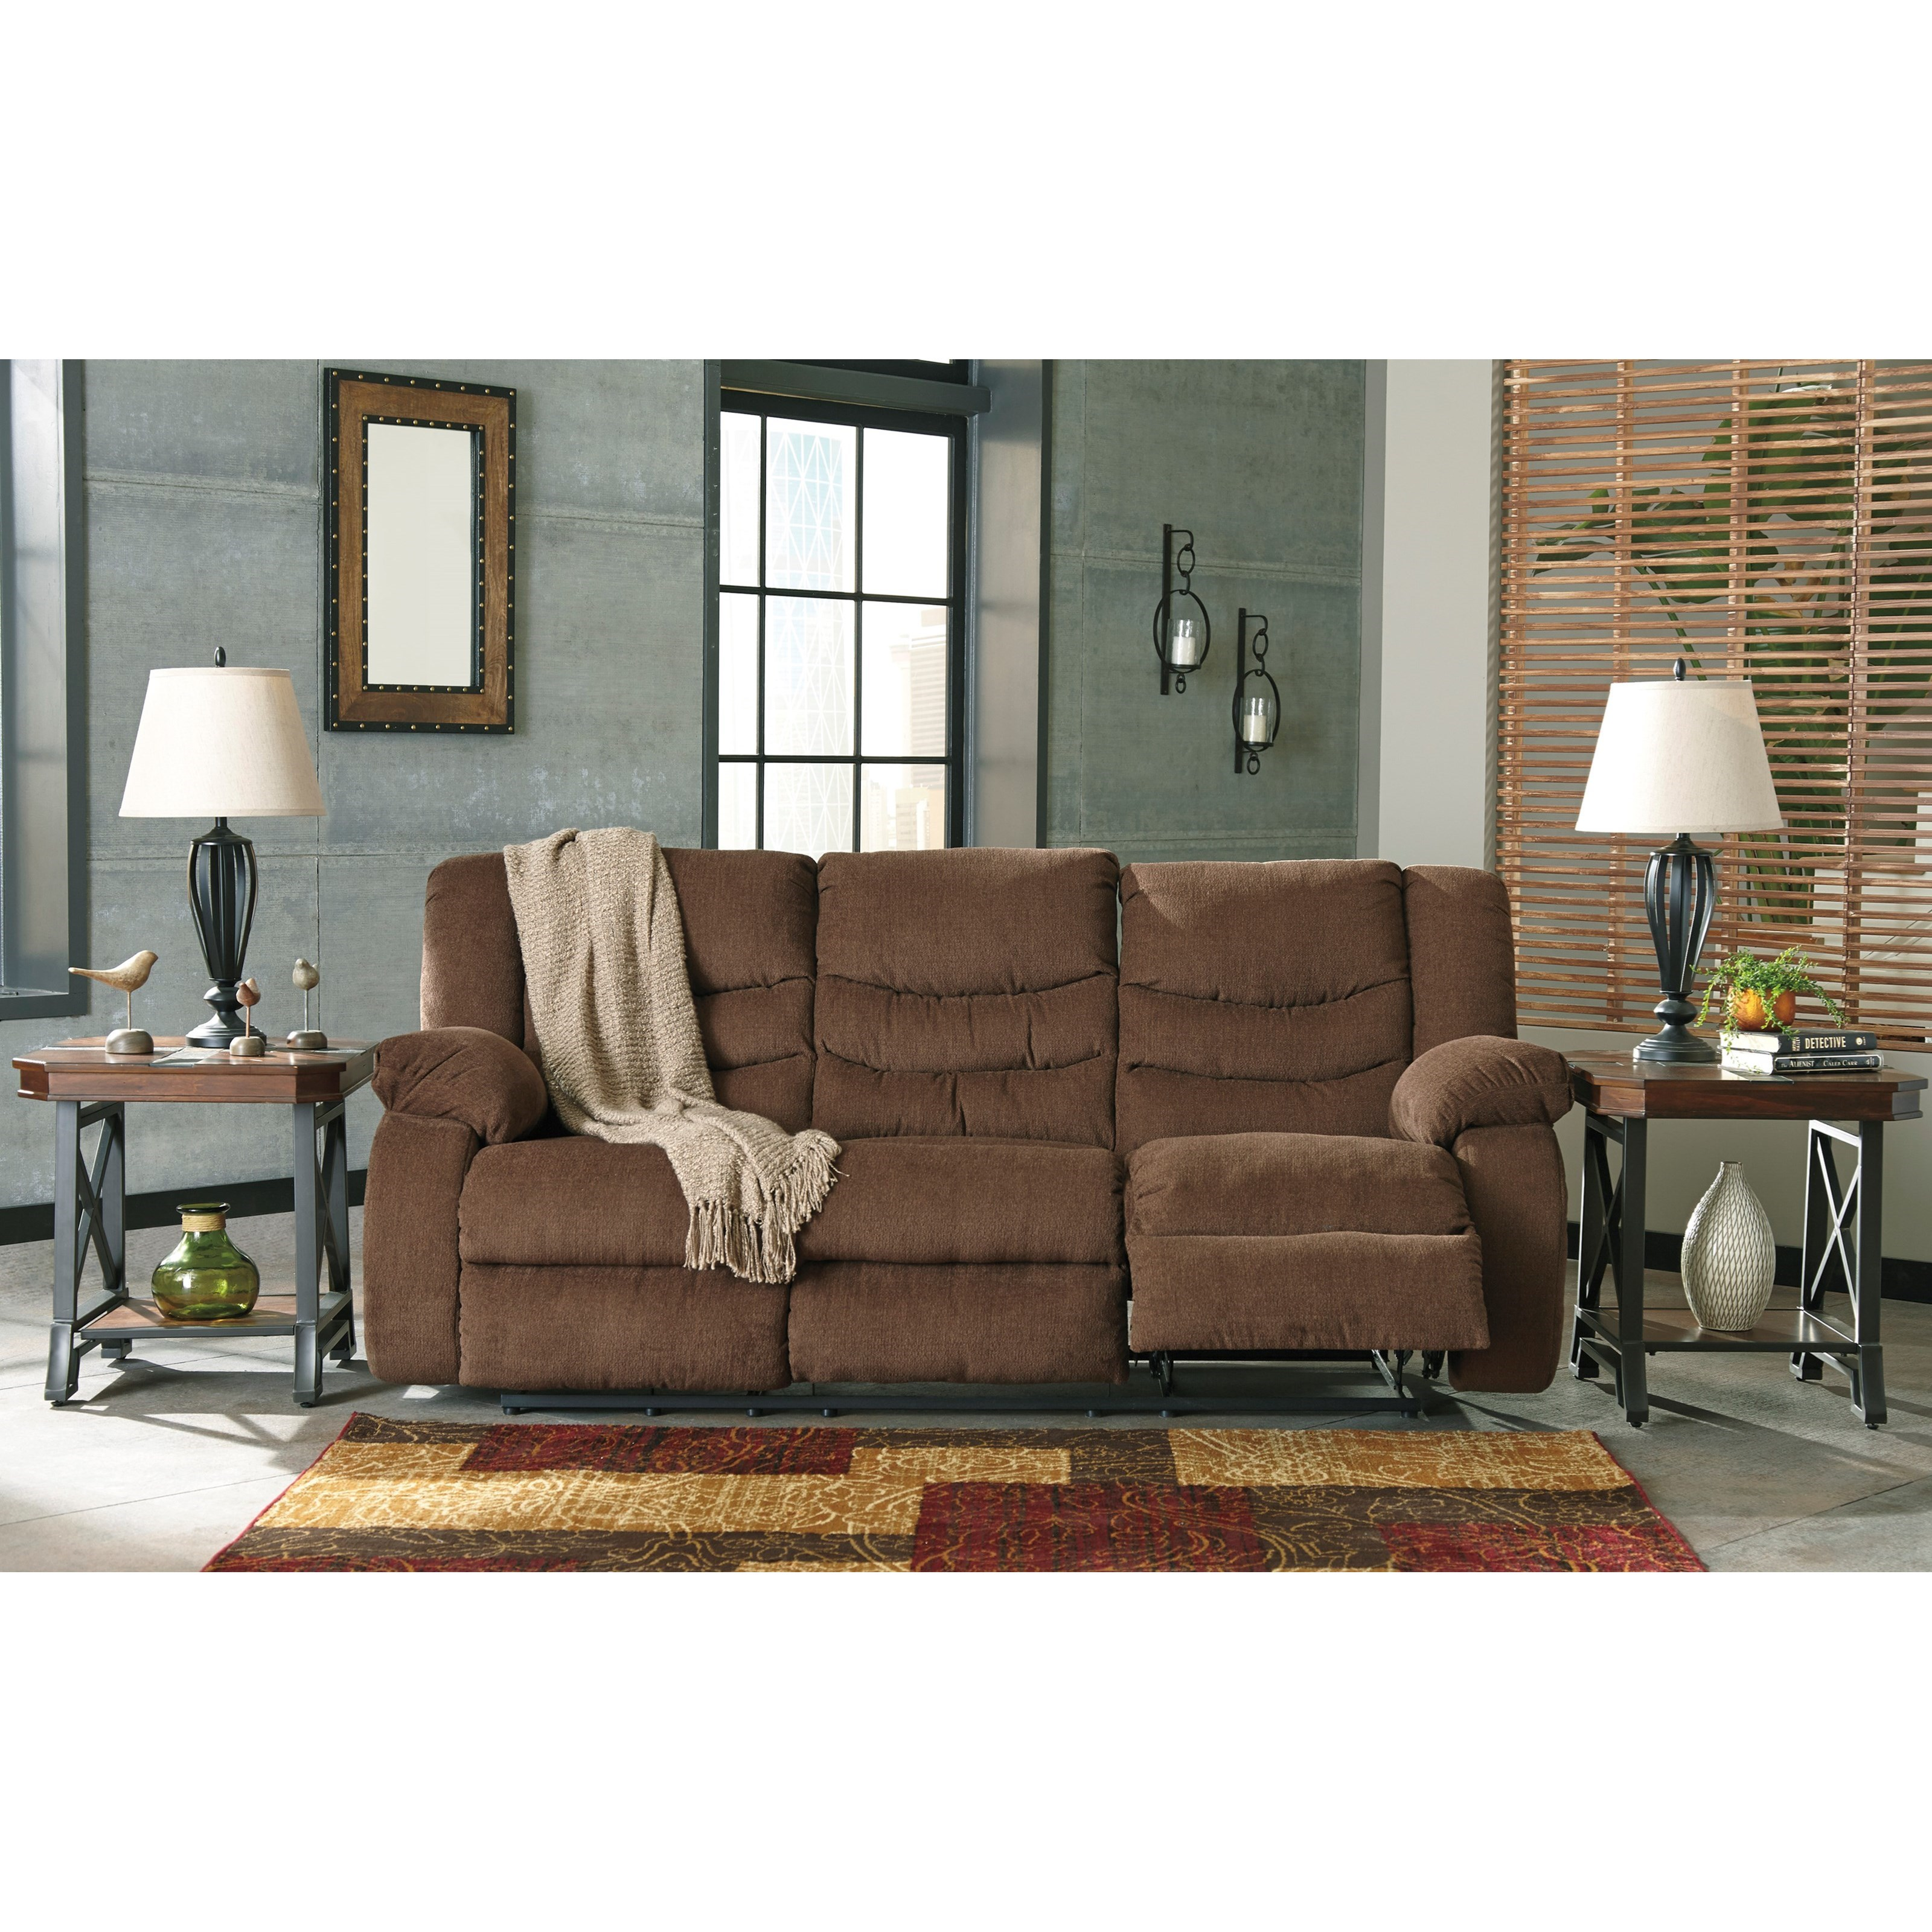 Furniture By Ashley: Signature Design By Ashley Tulen Contemporary Reclining Sofa